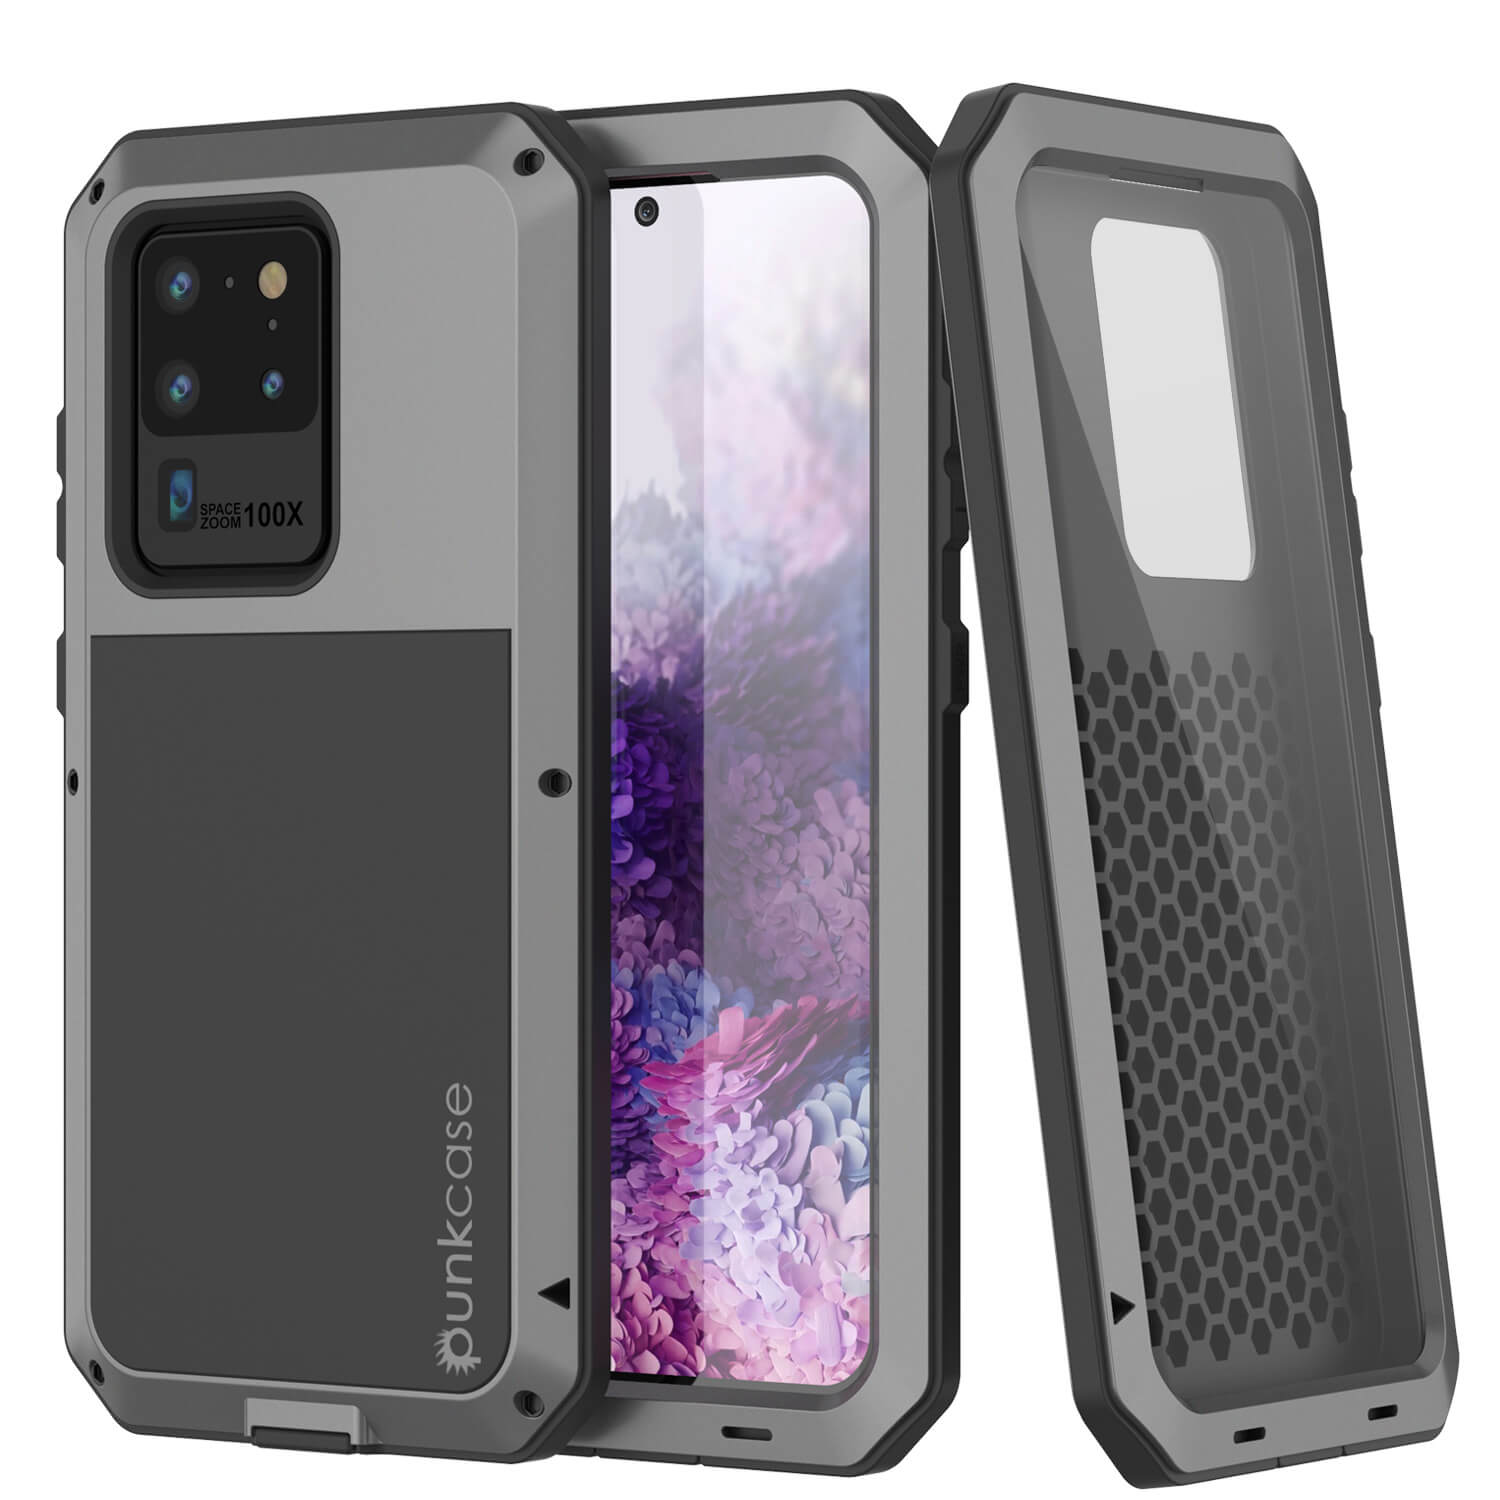 Galaxy S20 Ultra Metal Case, Heavy Duty Military Grade Rugged Armor Cover [Silver]